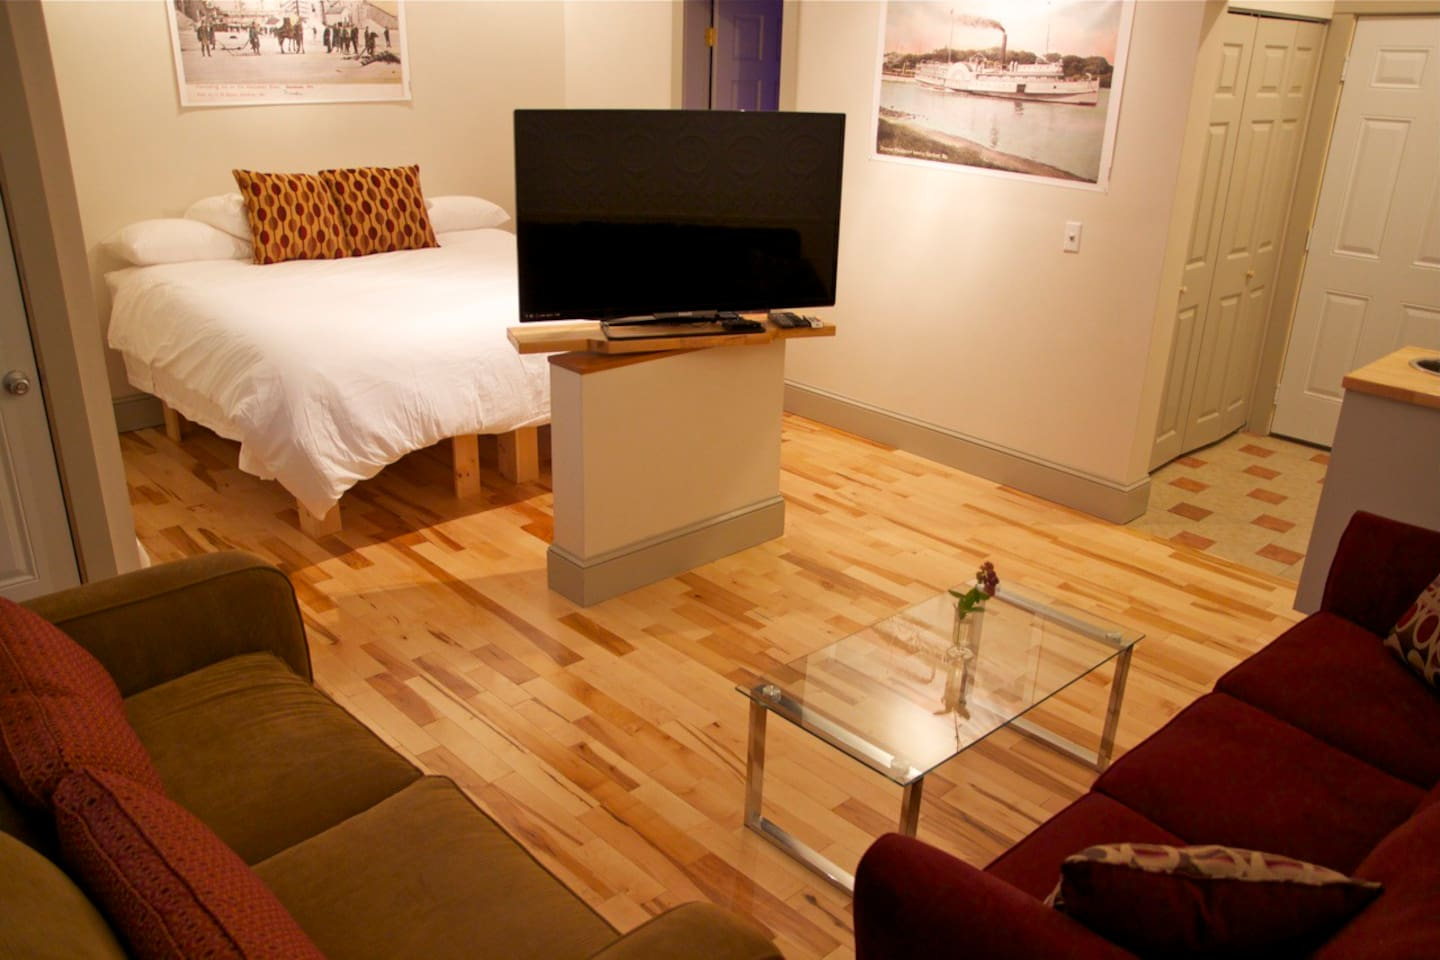 Suite 4 living and sleeping spaces with swivel TV.